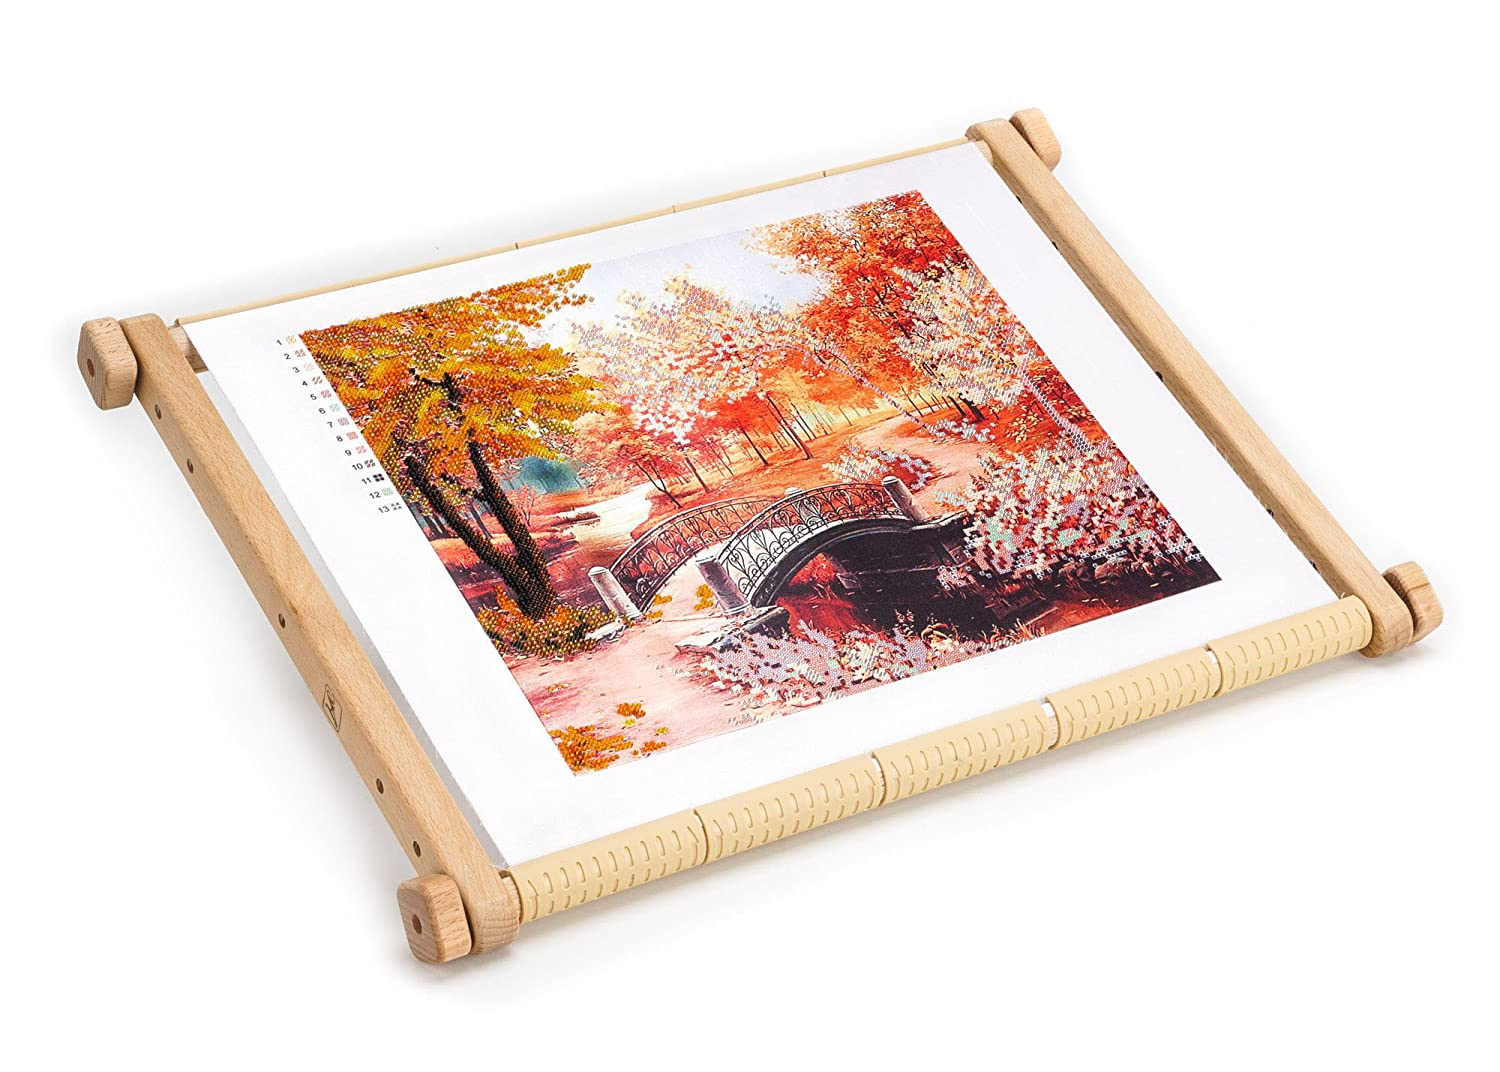 Needlepoint Embroidery Tapestry Scroll Frame Made of Organic Beech, Wooden Cross Stitch Frame, Needlepoint Holder, Stitching Frame (9.8 х 12.5 in) Arabeska